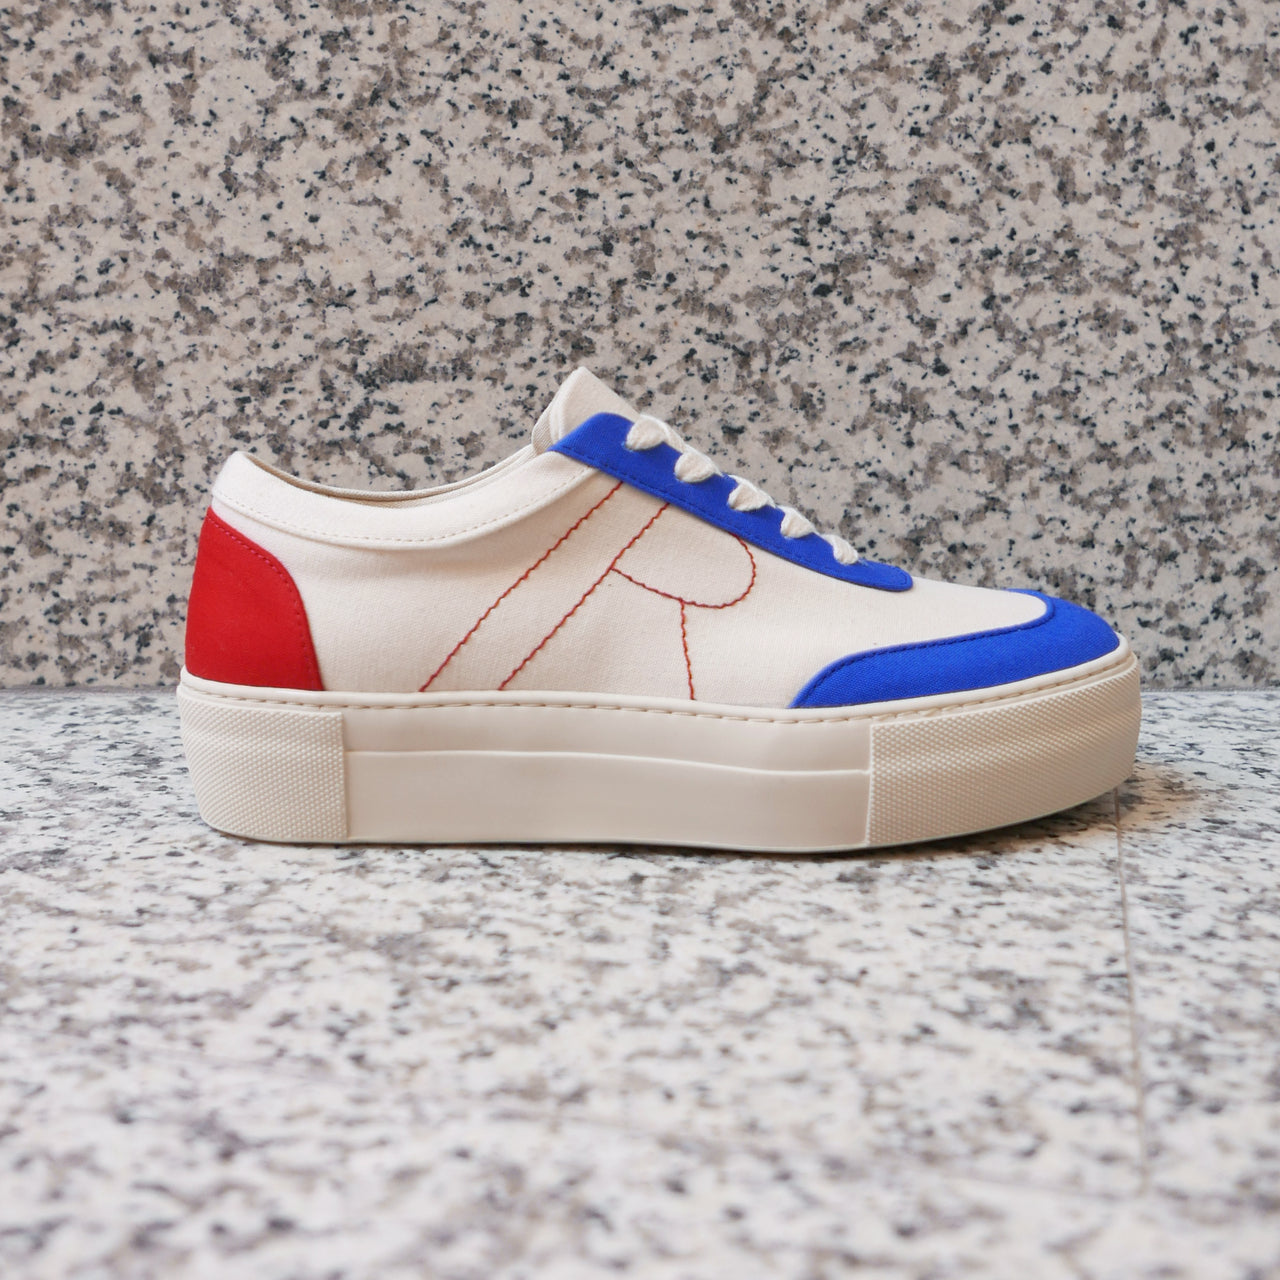 Bailey Sneakers in Blue & Red